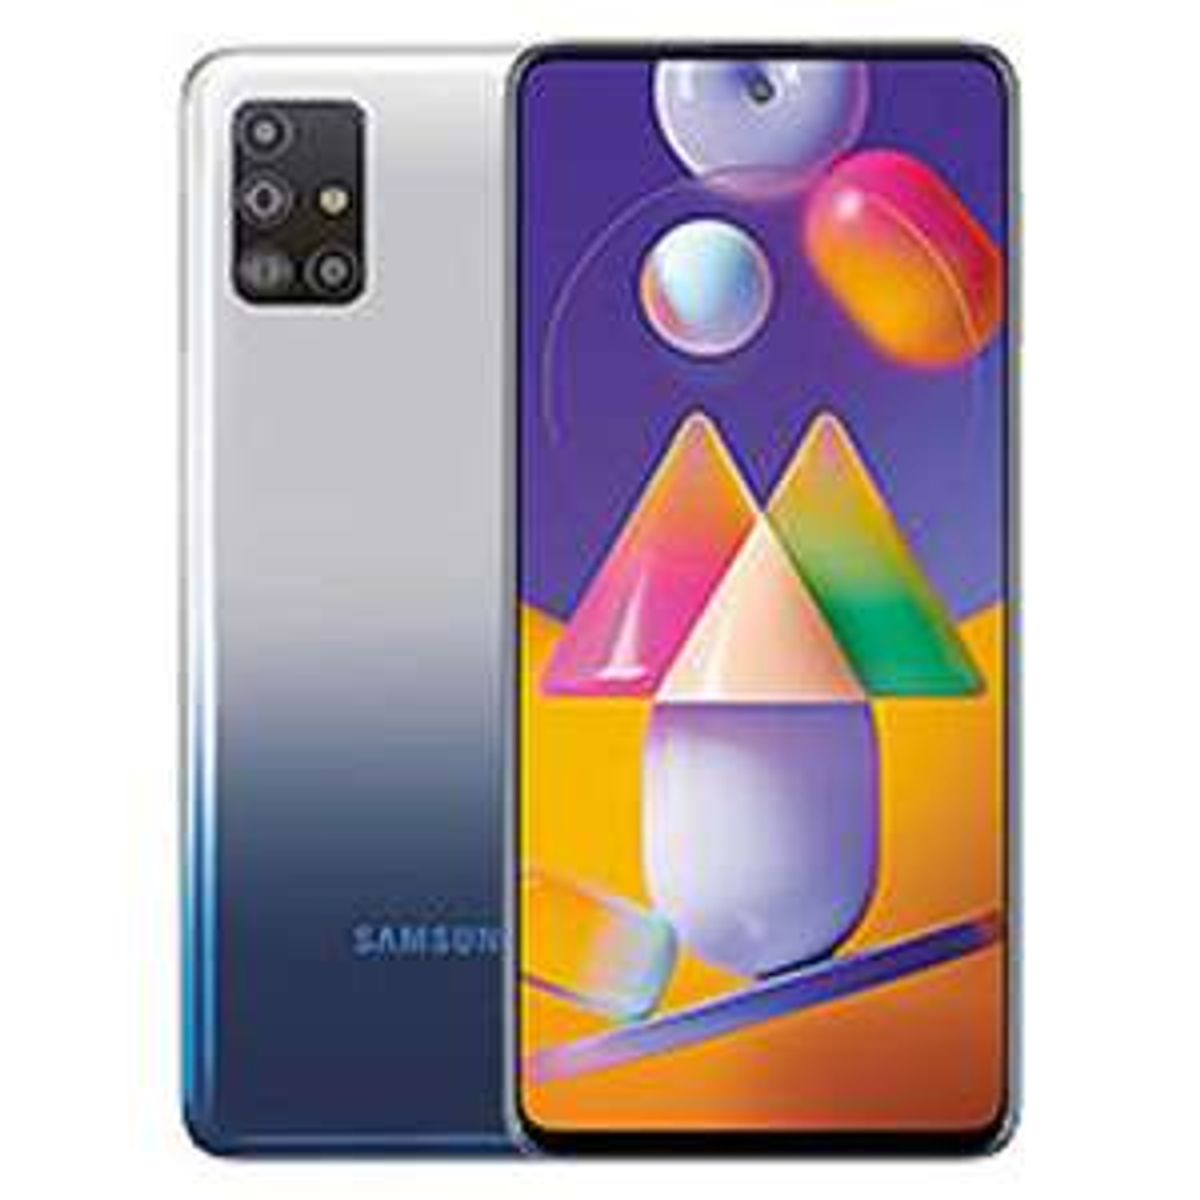 Samsung Mobile Phones Price List In India August 2021 Digit In